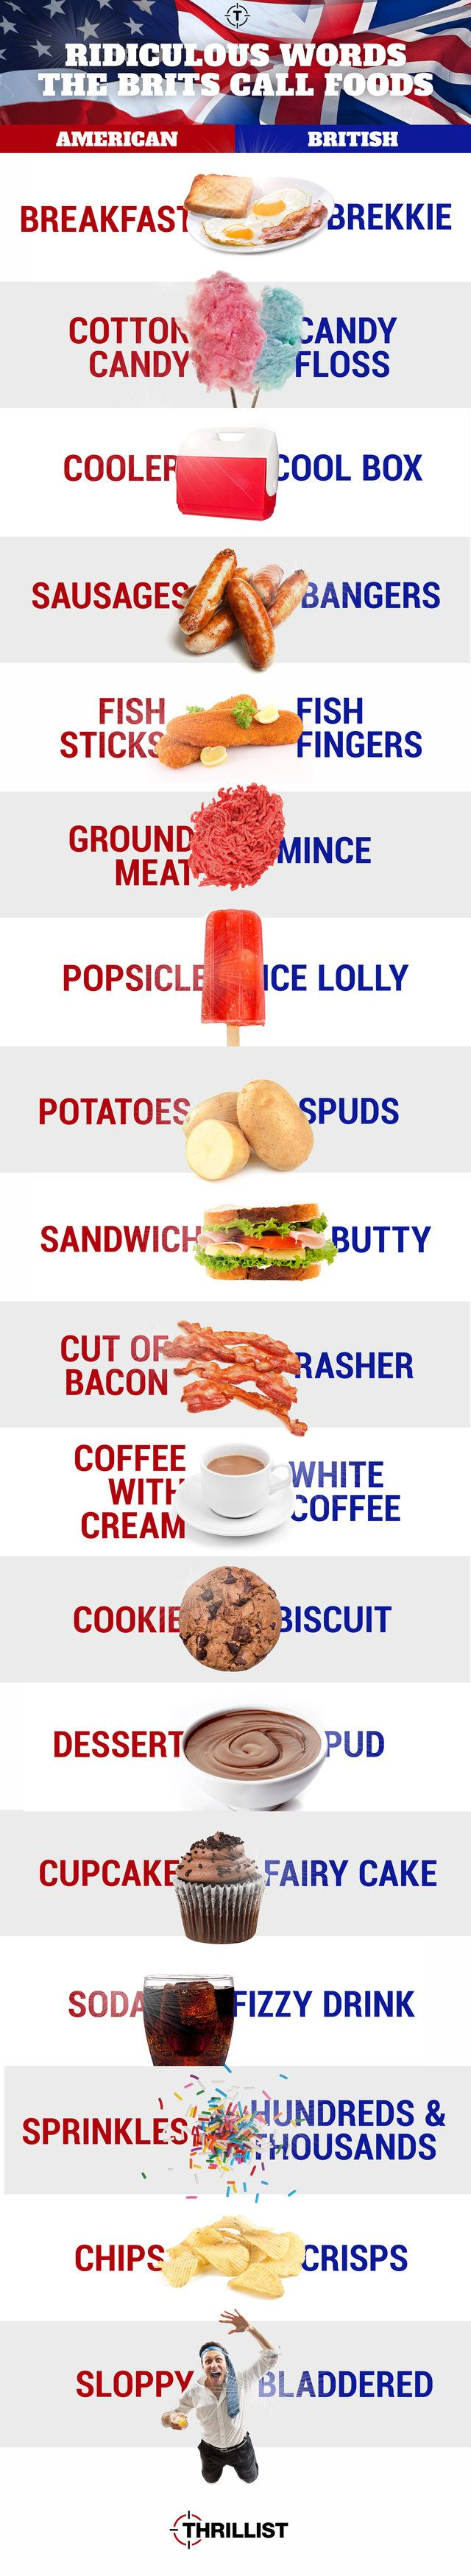 American language vs the British language. People of Britain call items weird things compared to here in the United States.